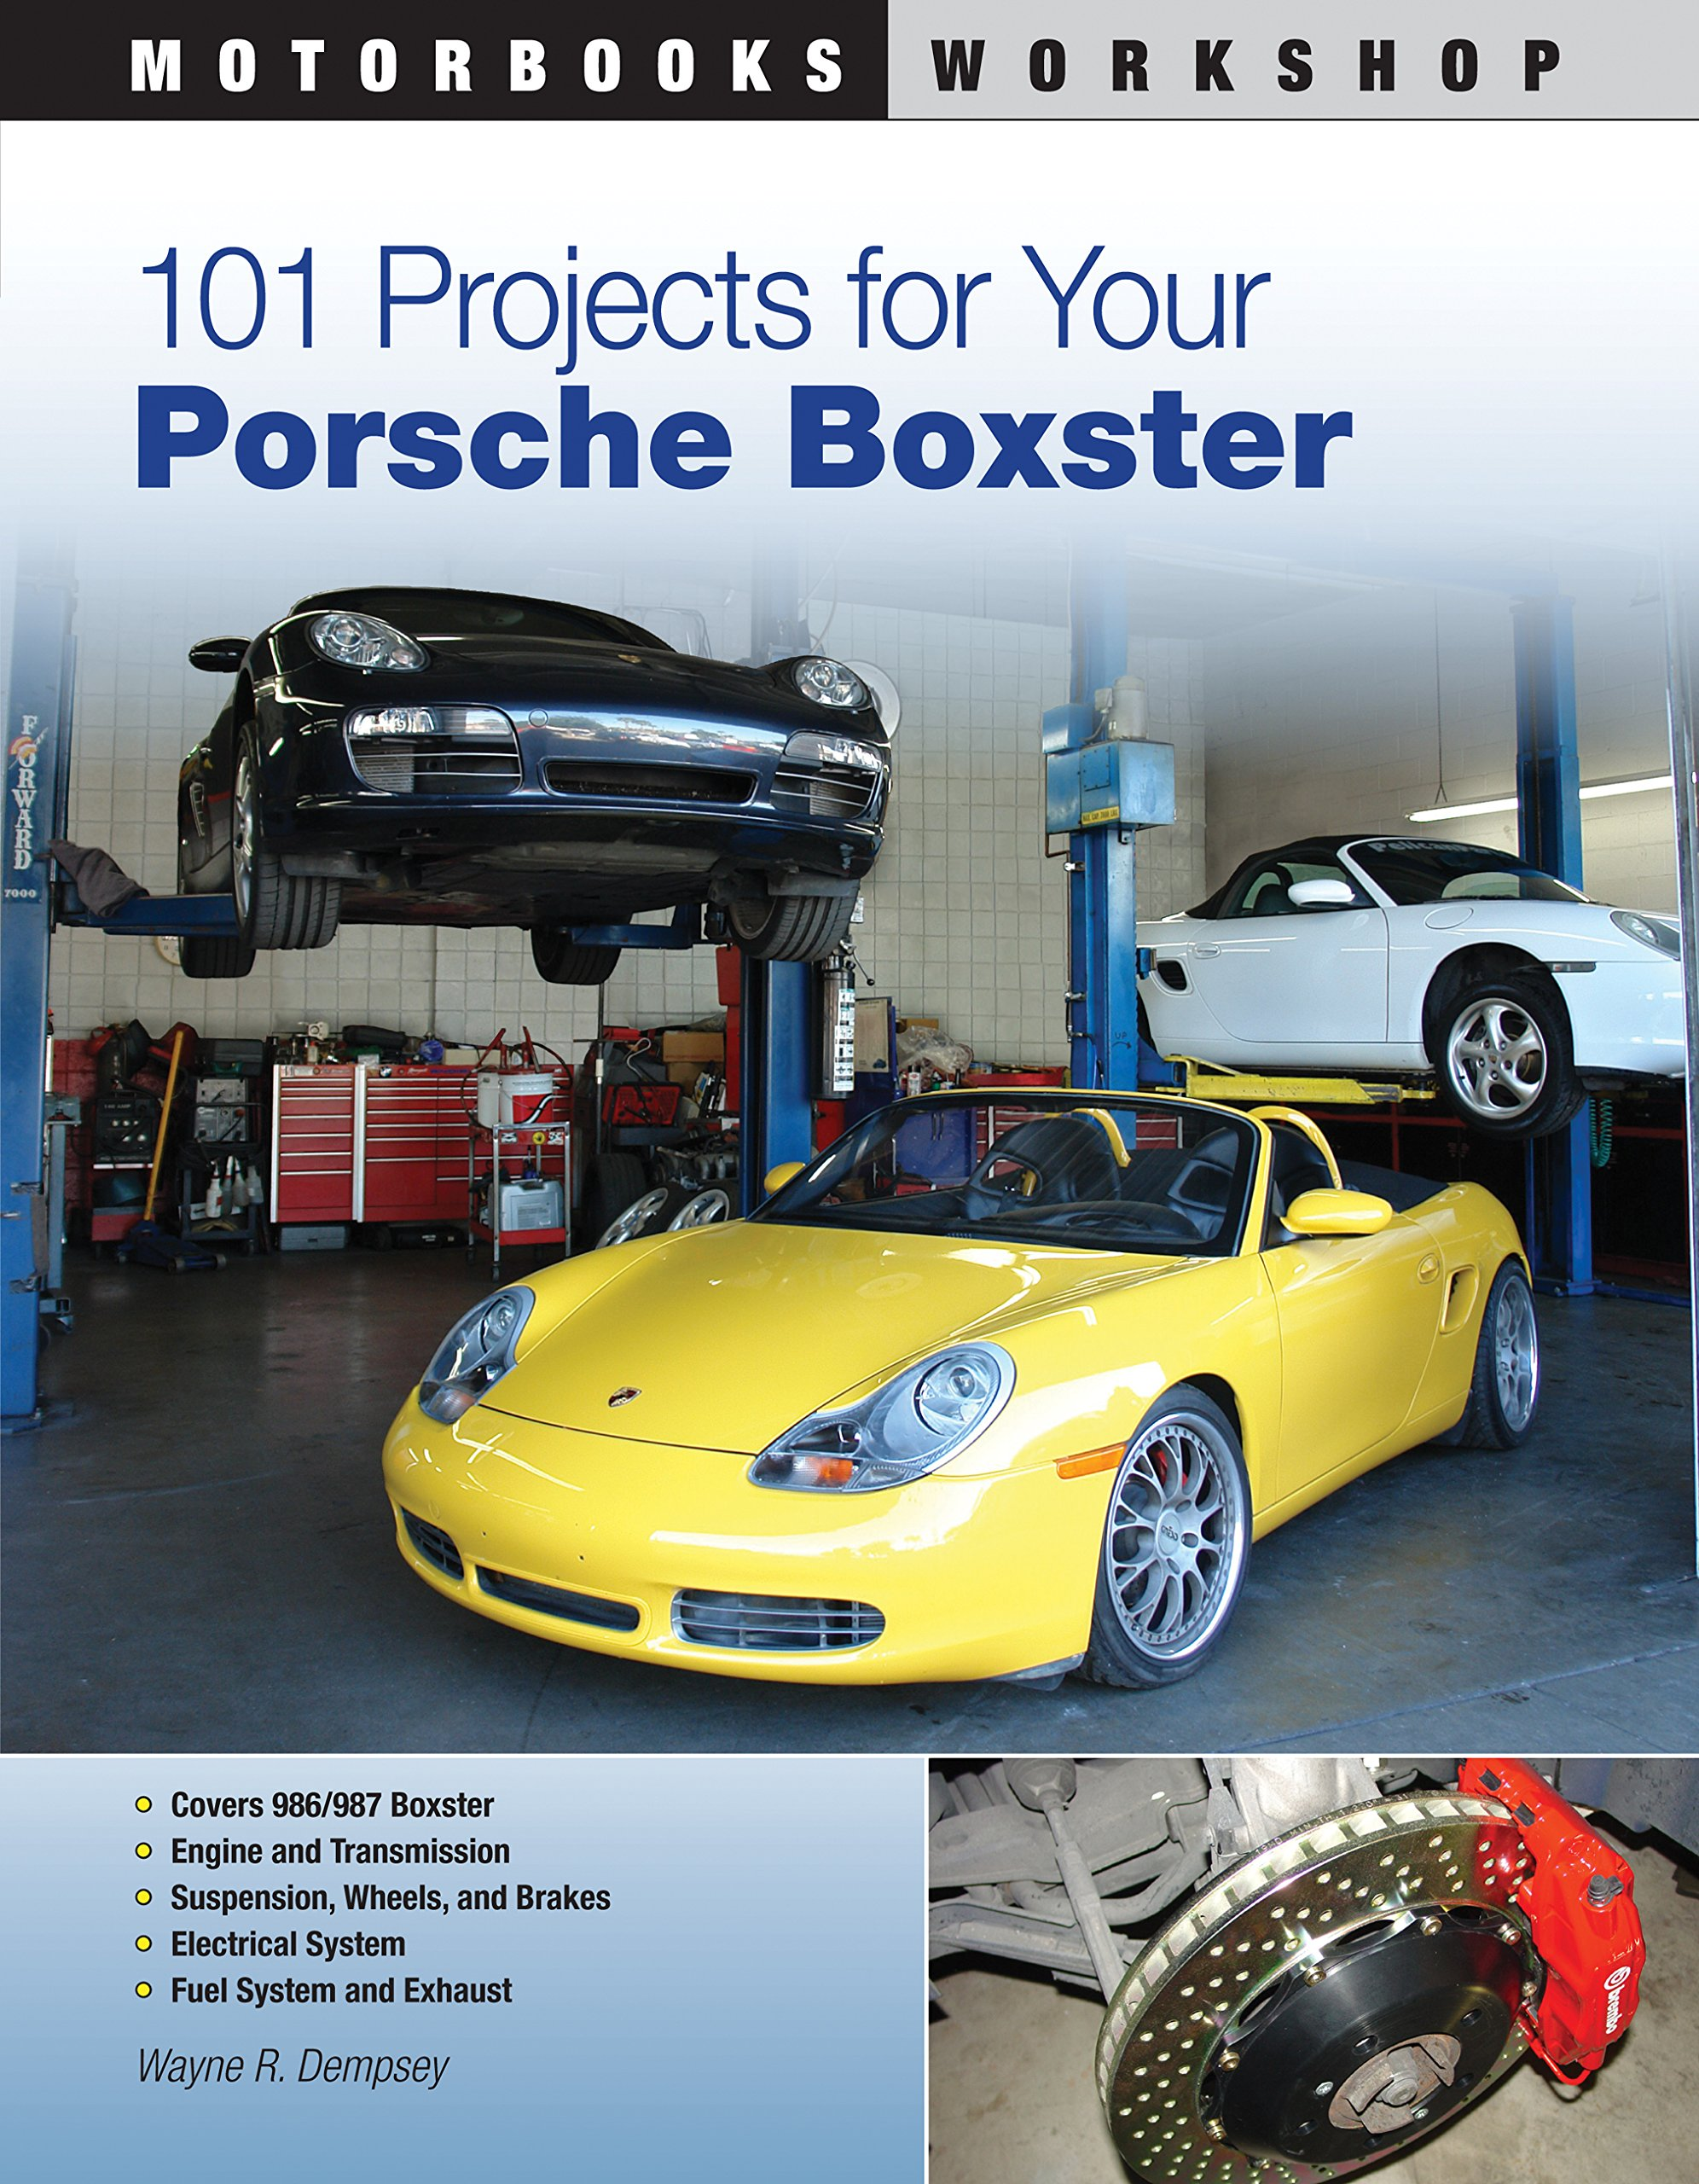 101 Projects for Your Porsche Boxster (Motorbooks Workshop): Wayne Dempsey:  9780760335543: Amazon.com: Books